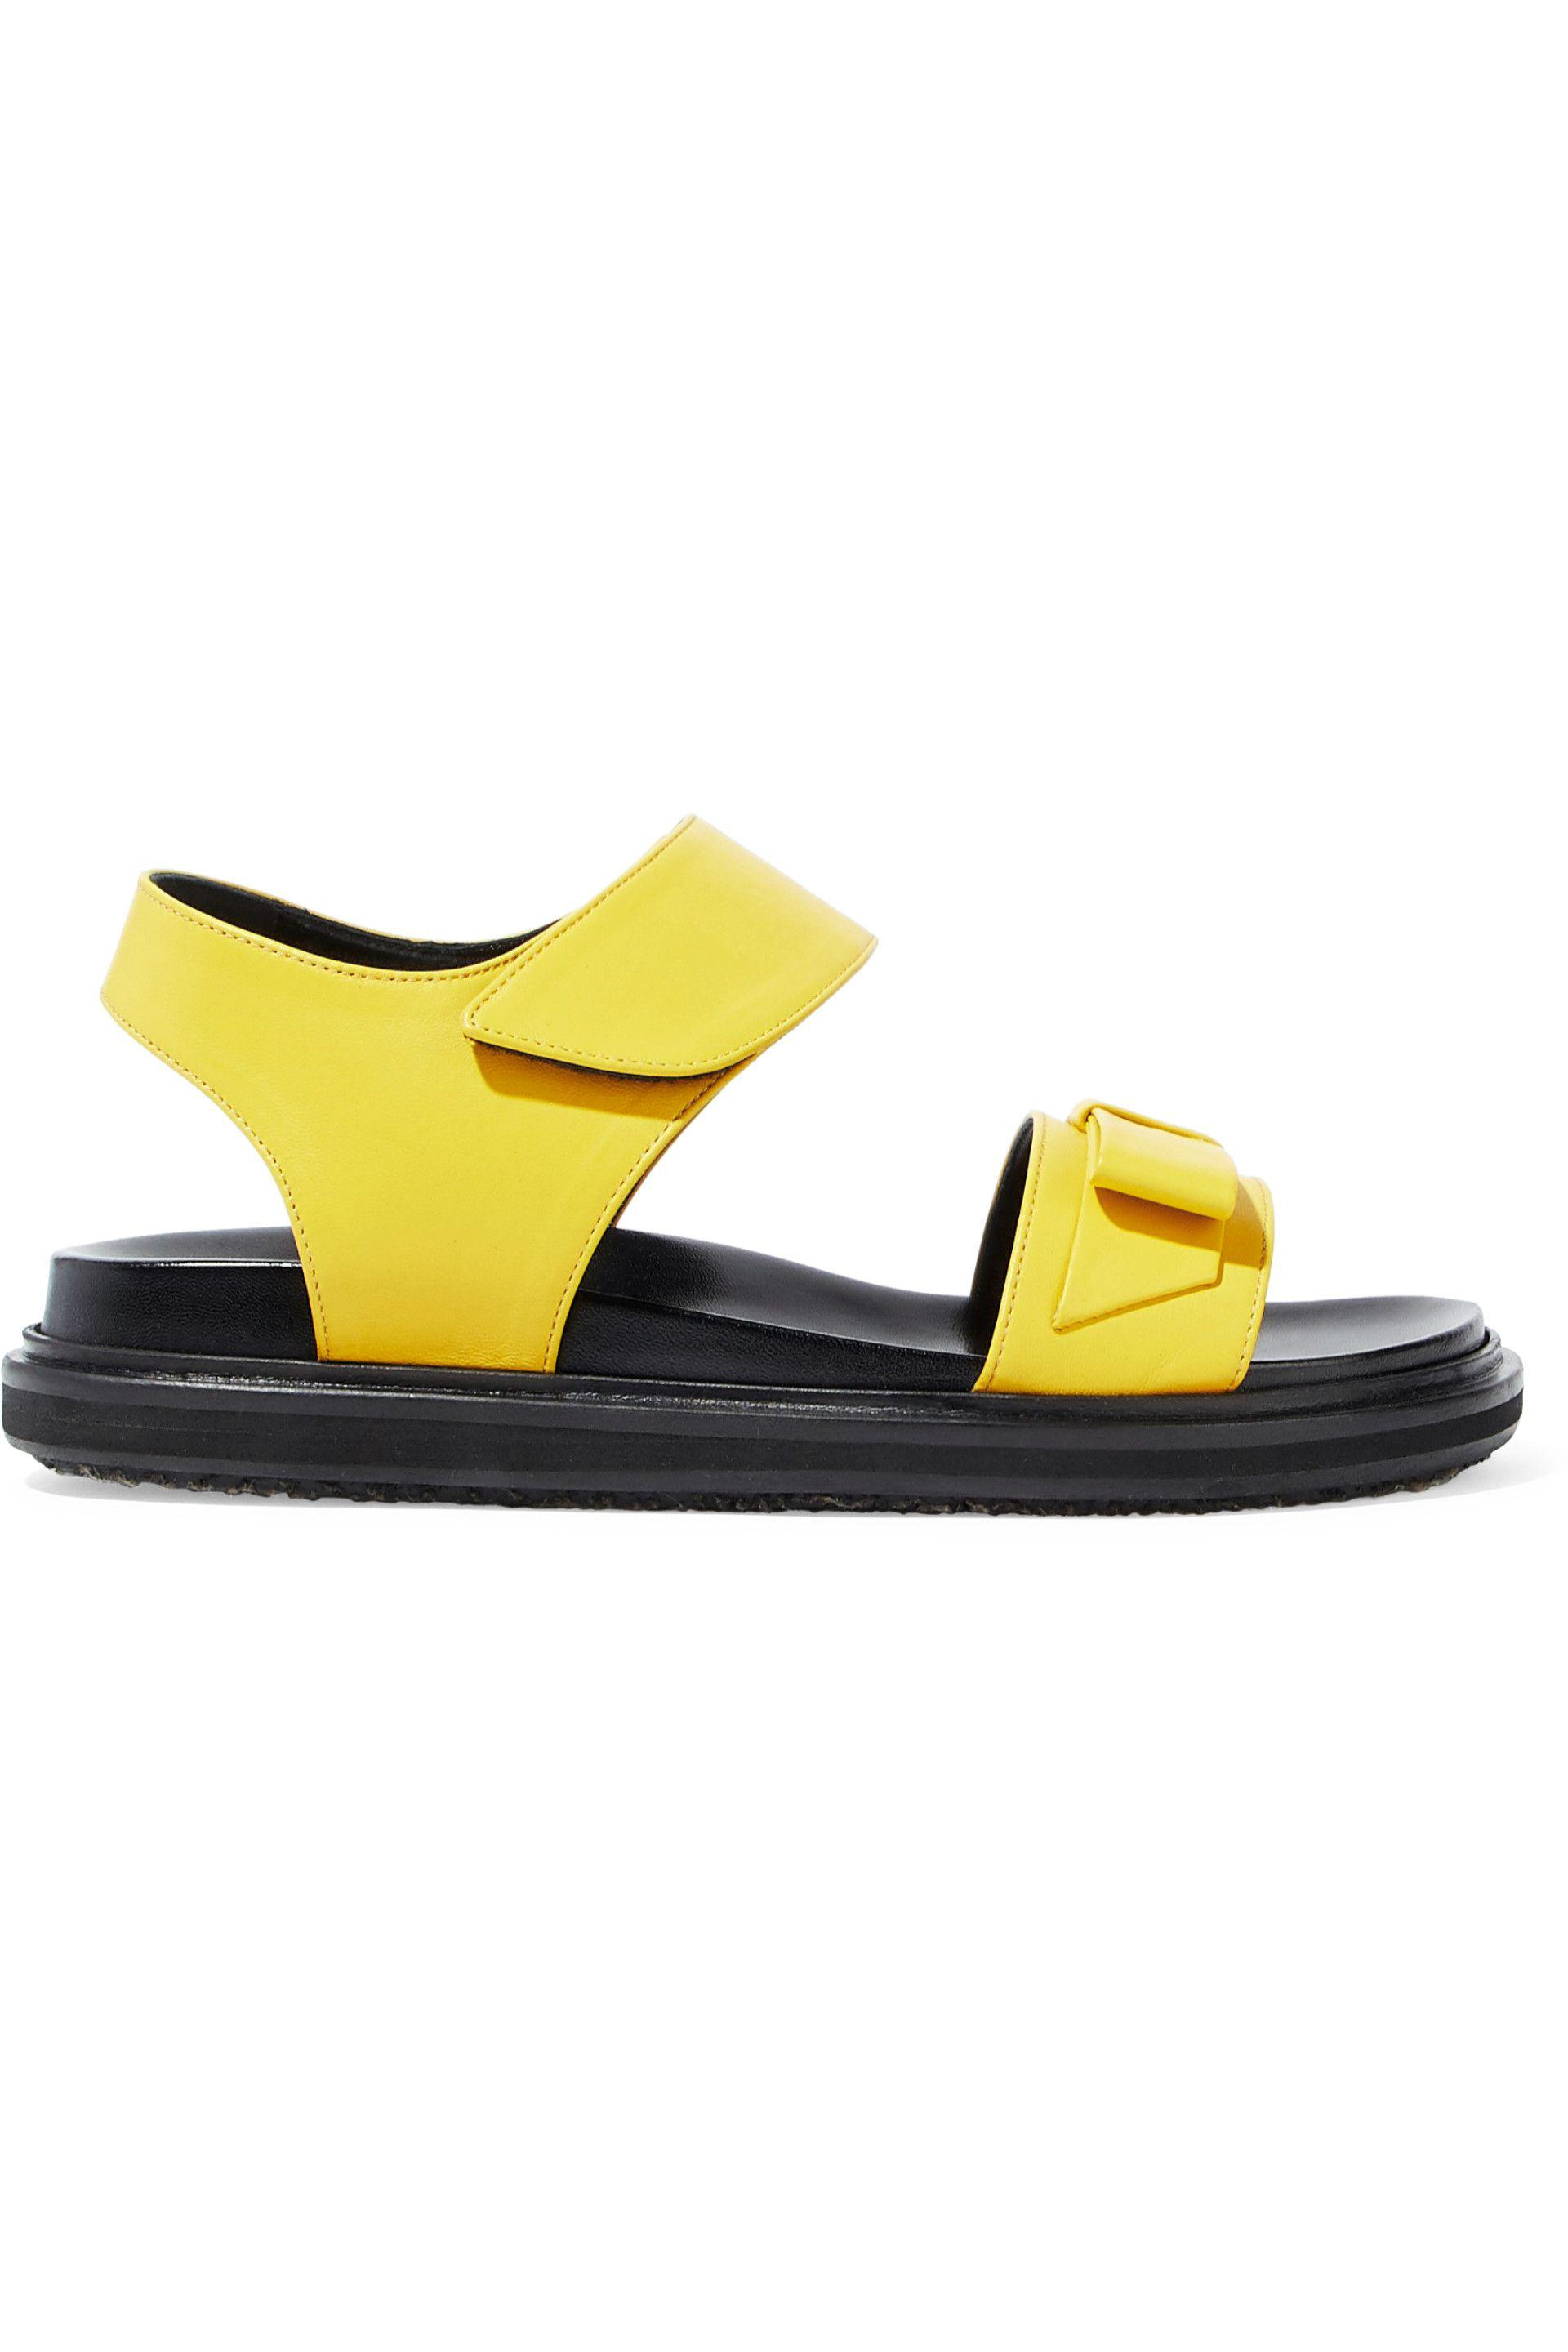 Marni bow embellished sandals outlet 2014 clearance affordable sale visit new XF3bRygC